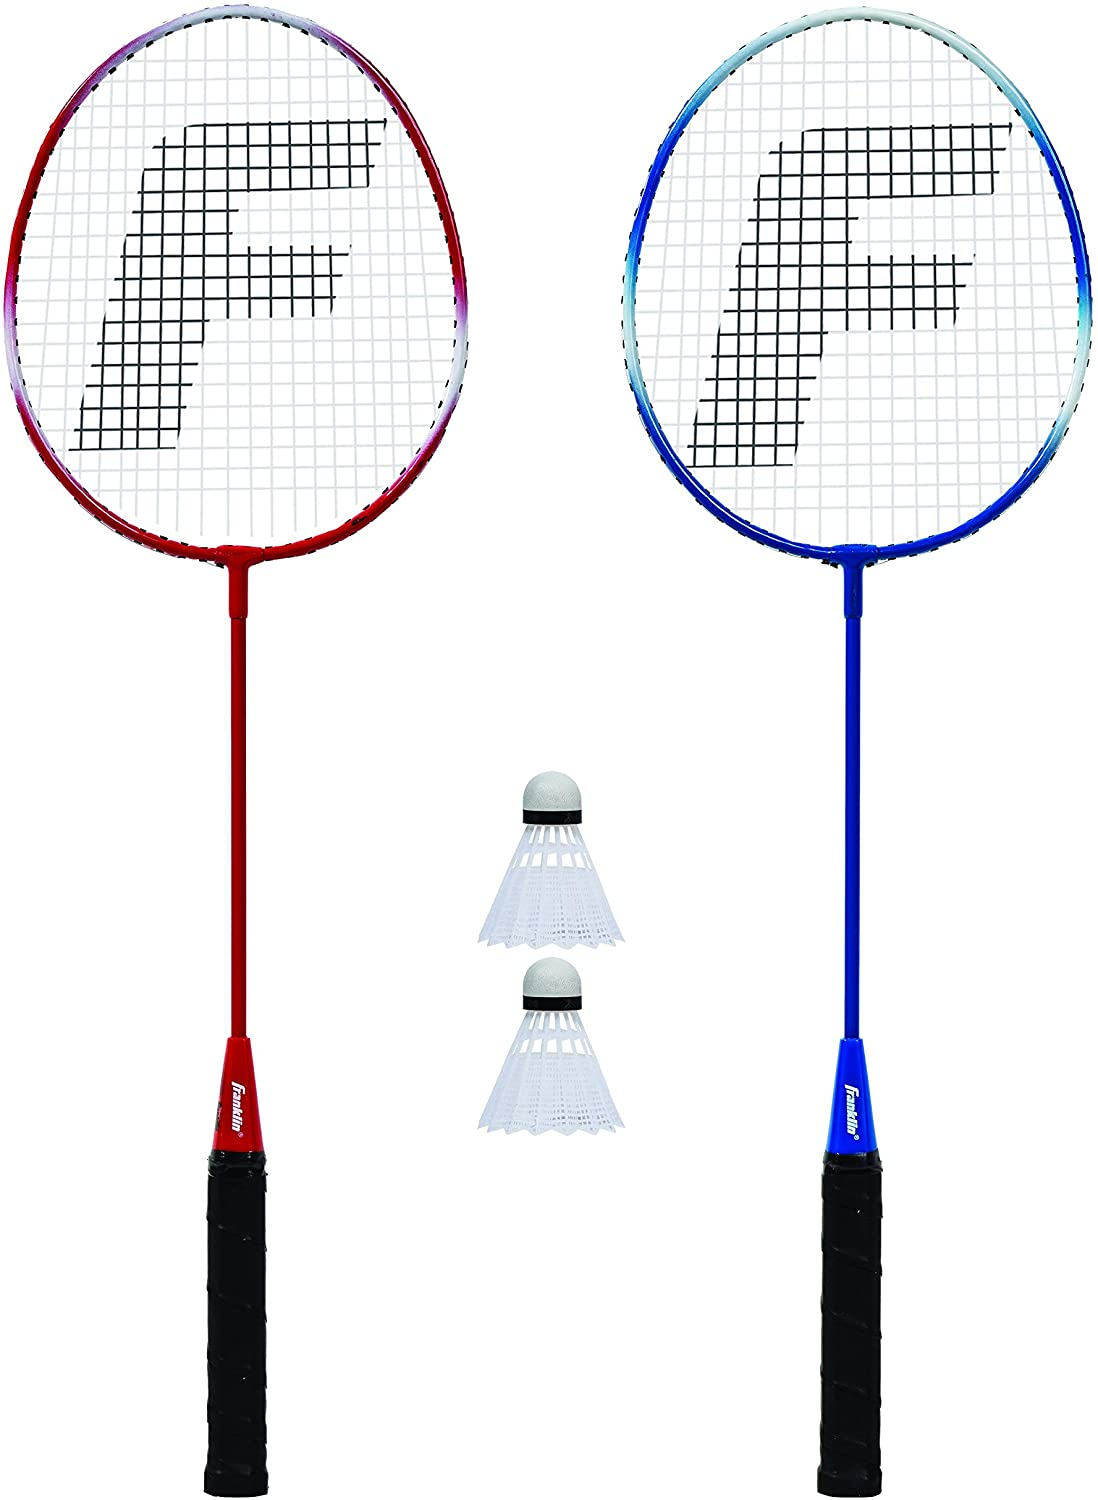 Franklin Sports 2 Player Badminton Racquet Replacement Set, One Size, Red, White, Blue (52623X) : General Sporting Equipment : Sports & Outdoors